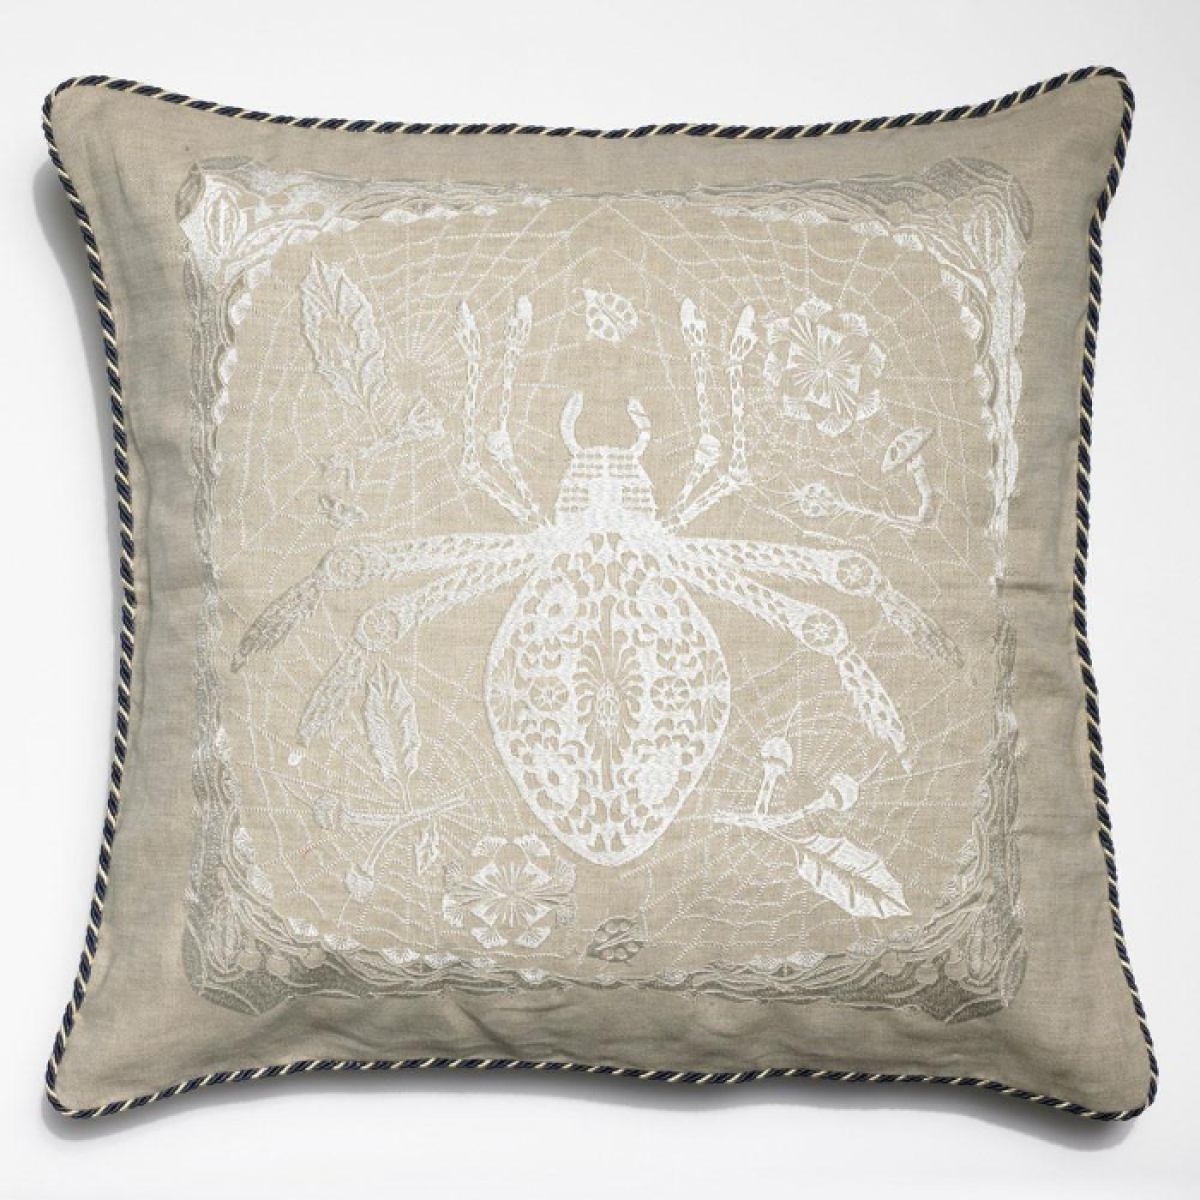 Embroidered cushion ,Spider and a Ladybug' | Kunstbaron